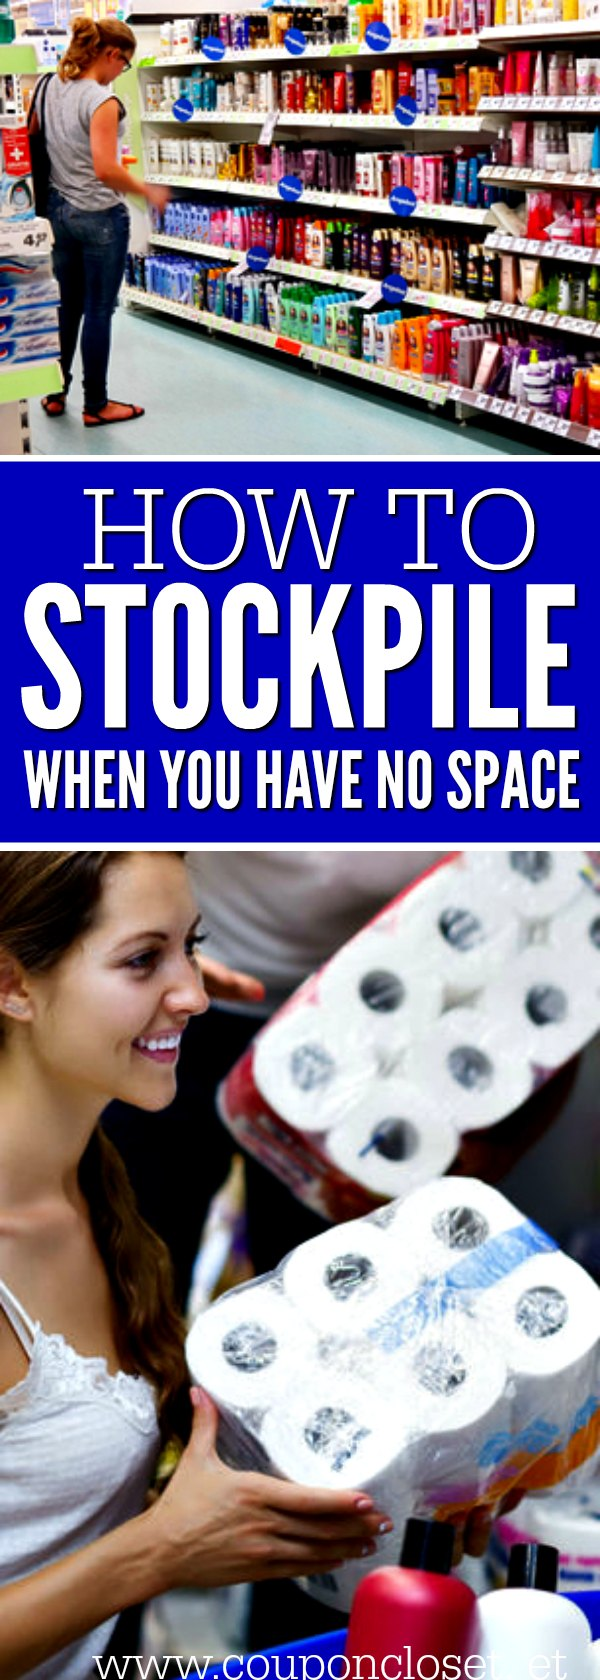 Learn how to stockpile when you don't have any space.12 tips for stockpiling when you don't know where to put it! Maximize your space and build a stockpile.